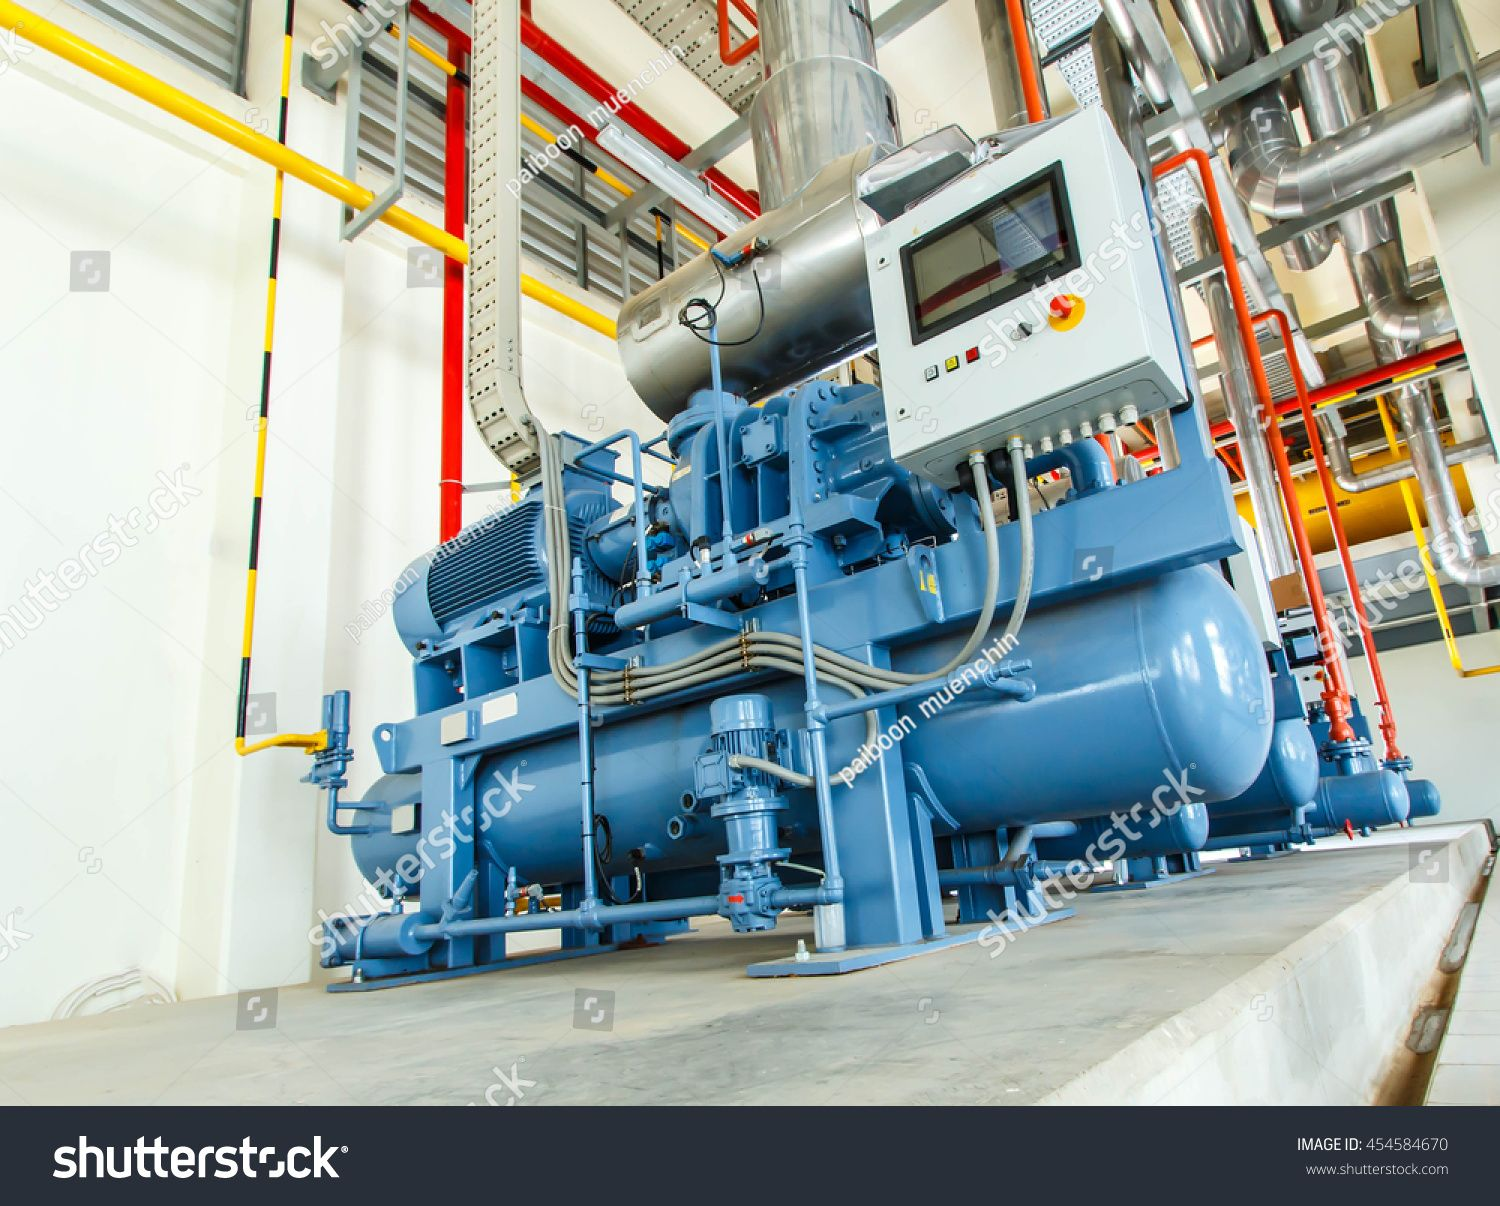 Industrial Air Compressor Machine,Piston Type And New